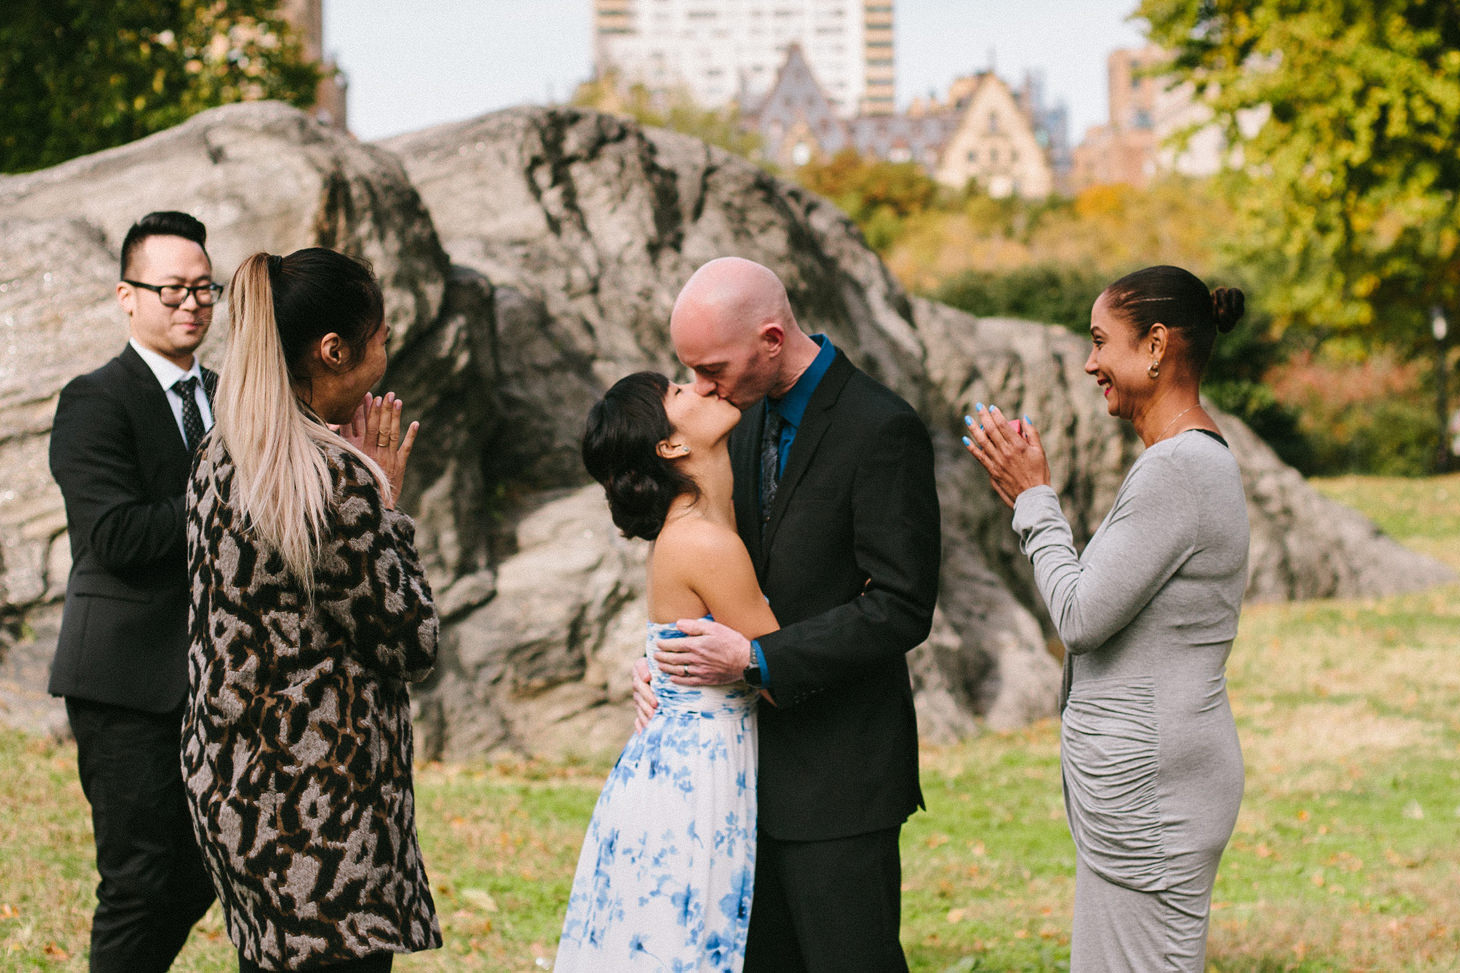 012-NYC-Elopement-Photography-SmittenChickens-Central-Park-Mandy-Sean.jpg